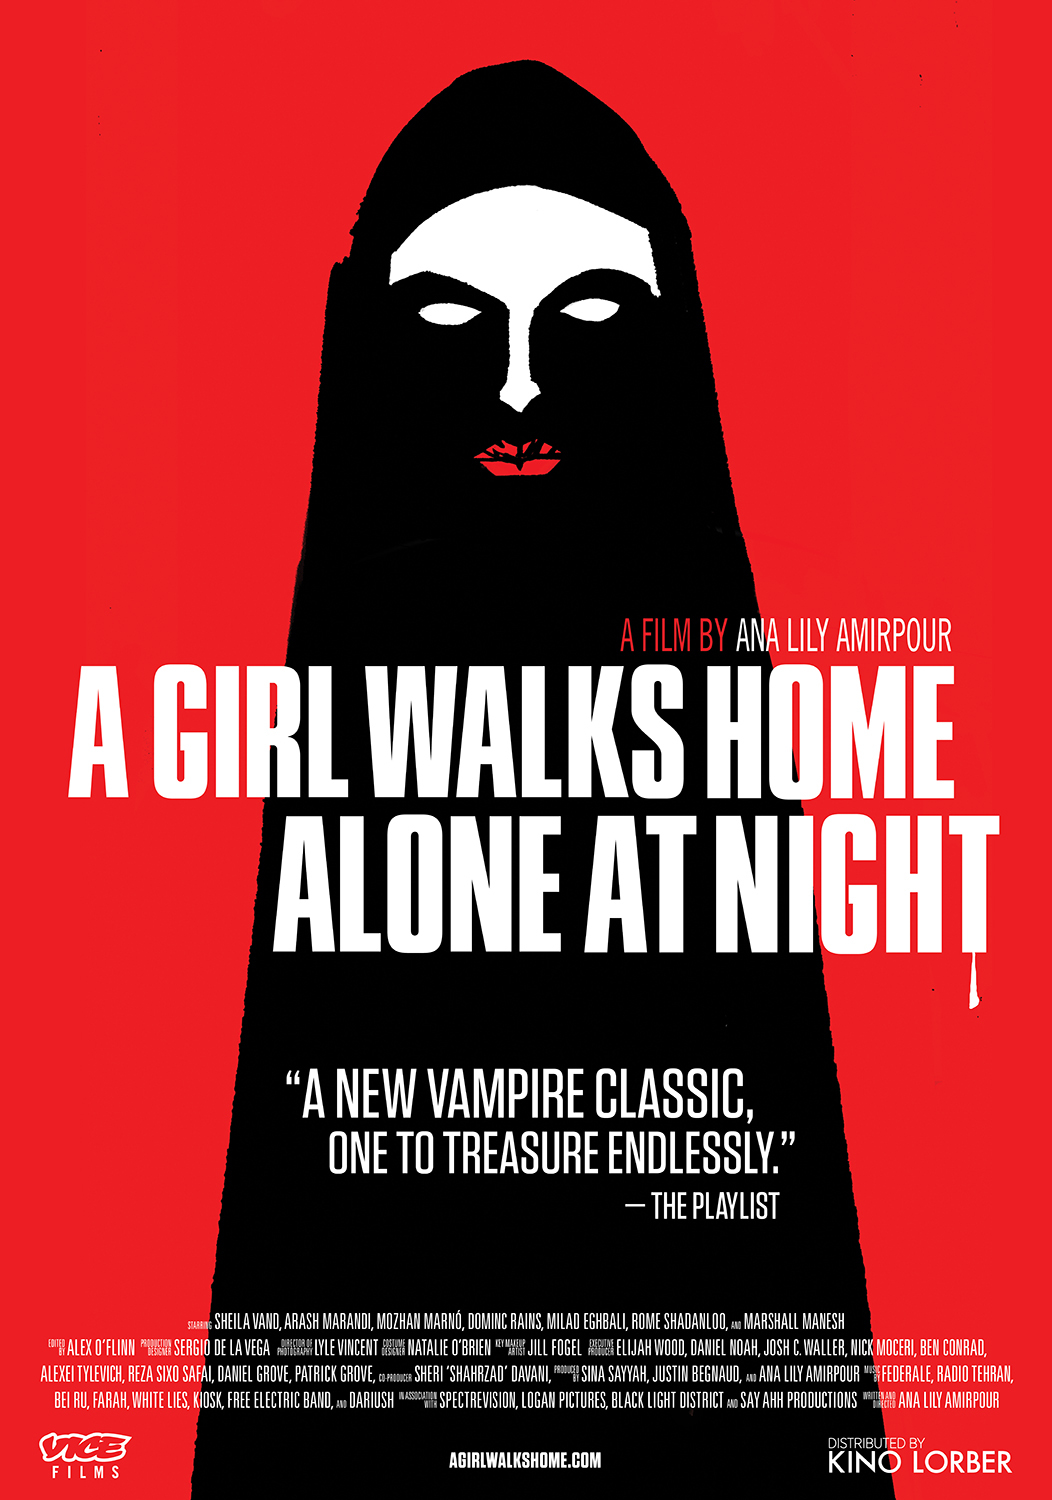 A Girl Walks Home Alone at Night (2014) - IMDb